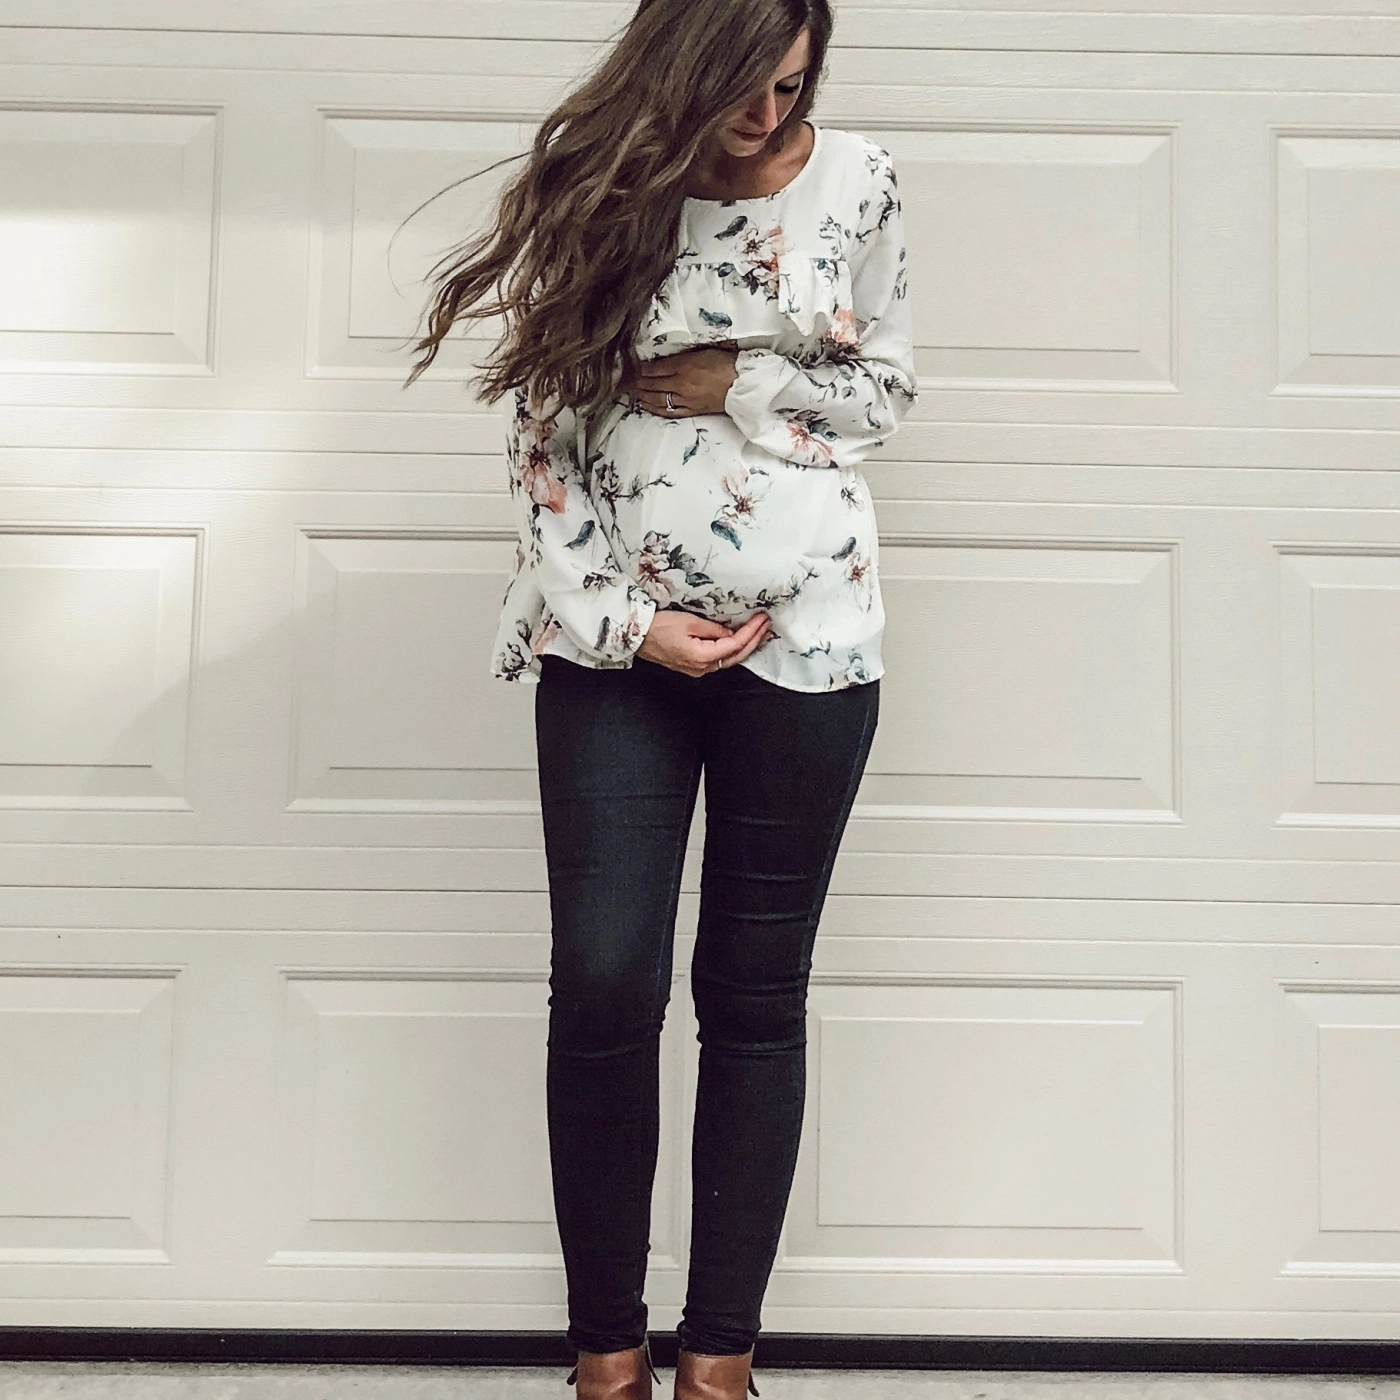 Major Black Friday Sales With Pinkblush Black Friday Sale Cute Maternity Outfits Black